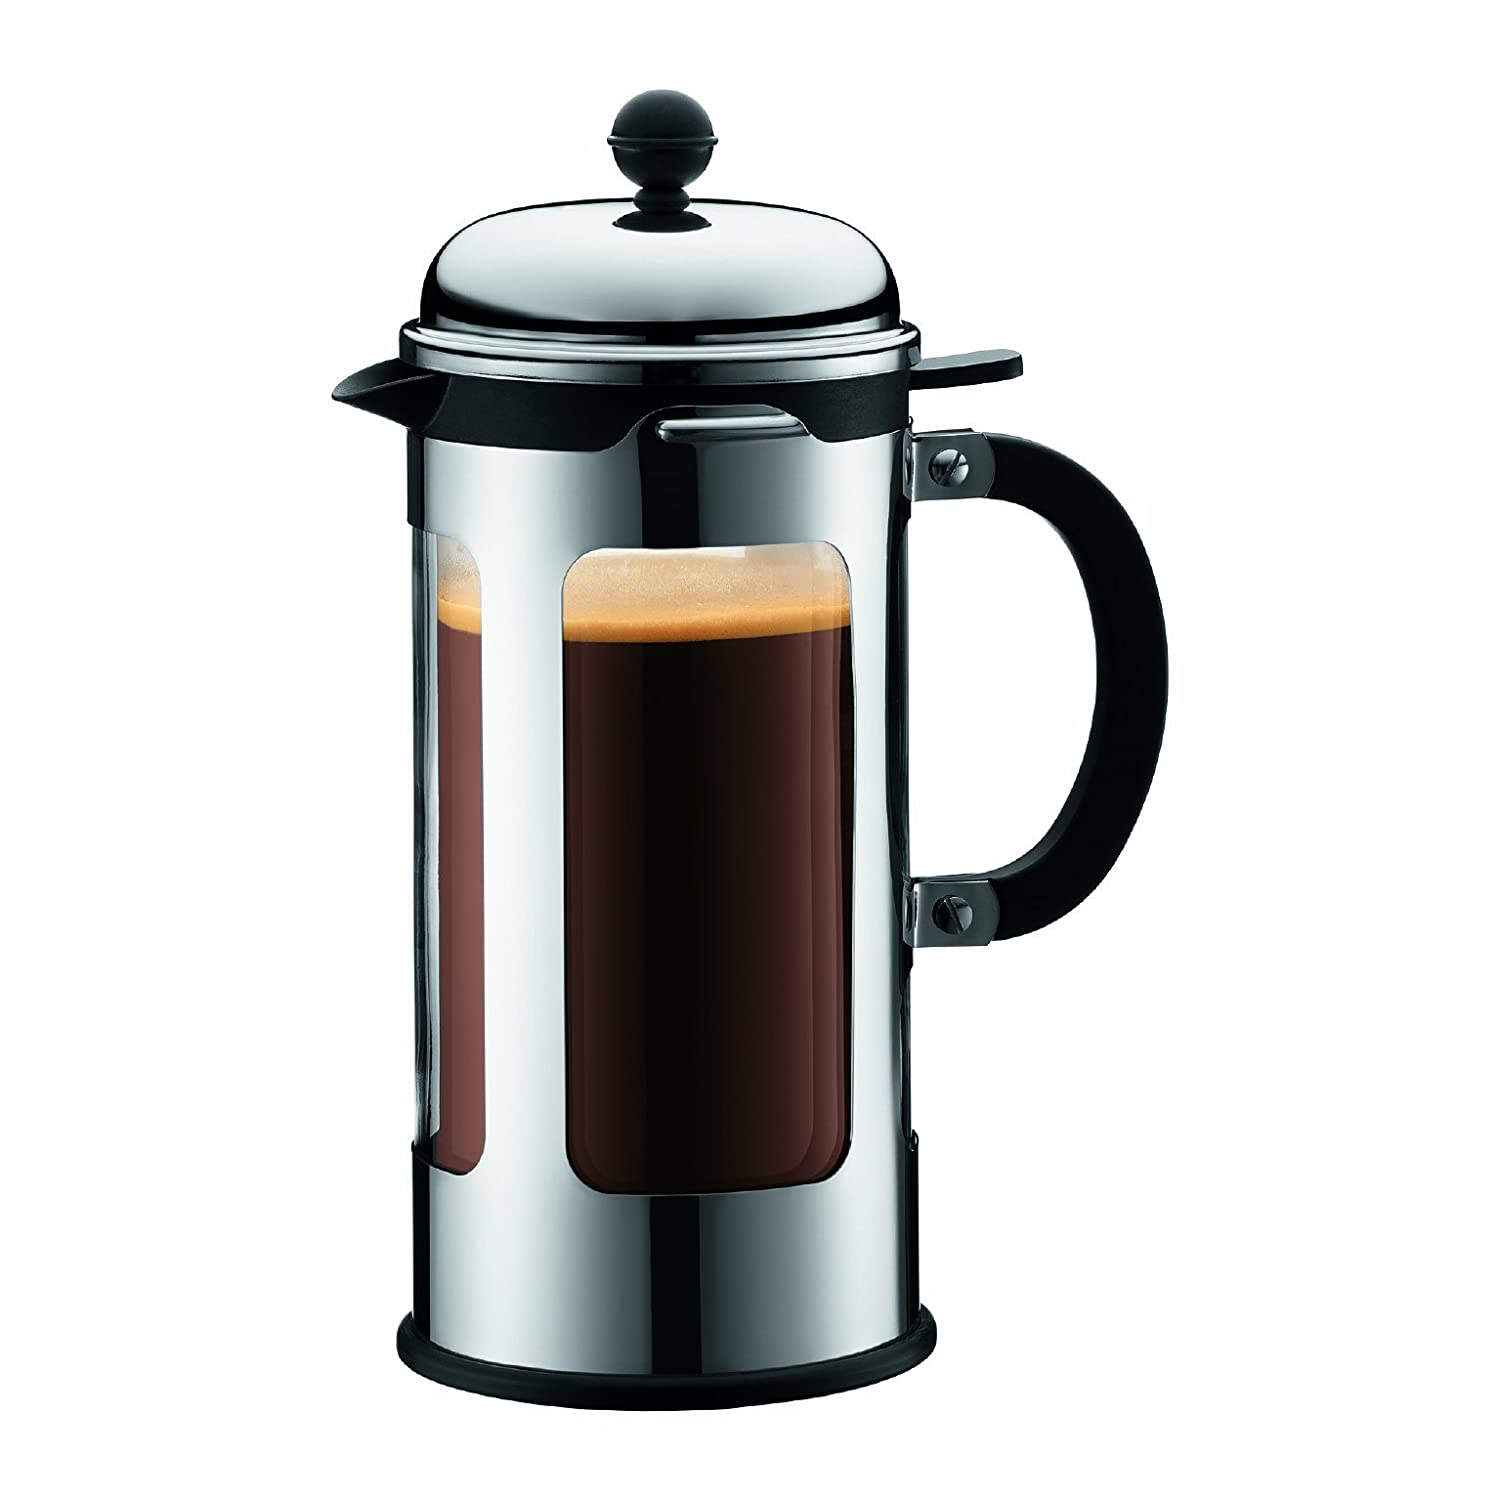 French Press Coffee Maker Images : What Are The Best Insulated French Press Coffee Makers? Top Off My Coffee Please